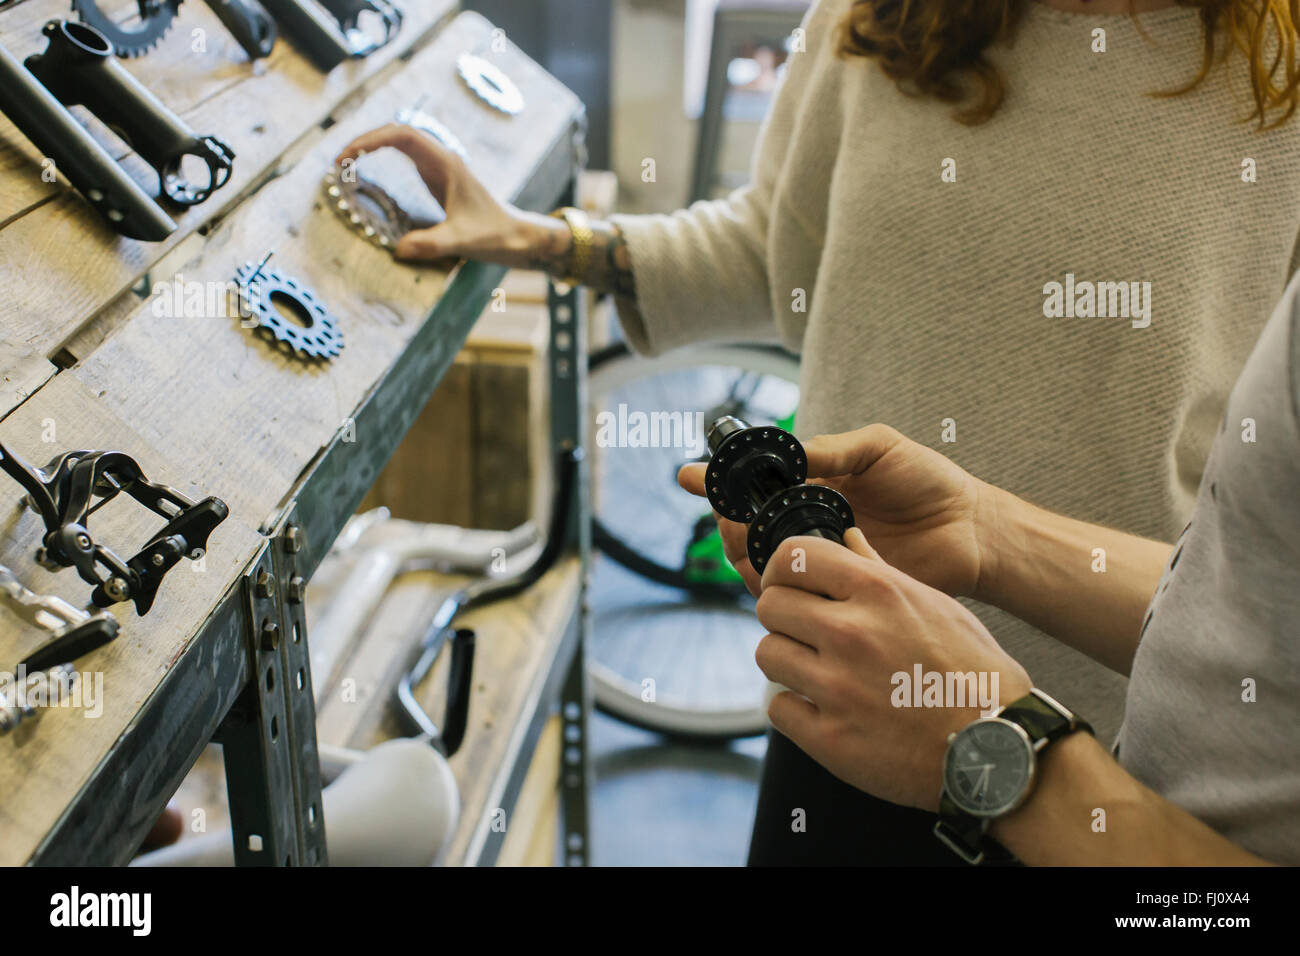 Man showing bicycle components to woman in a store - Stock Image